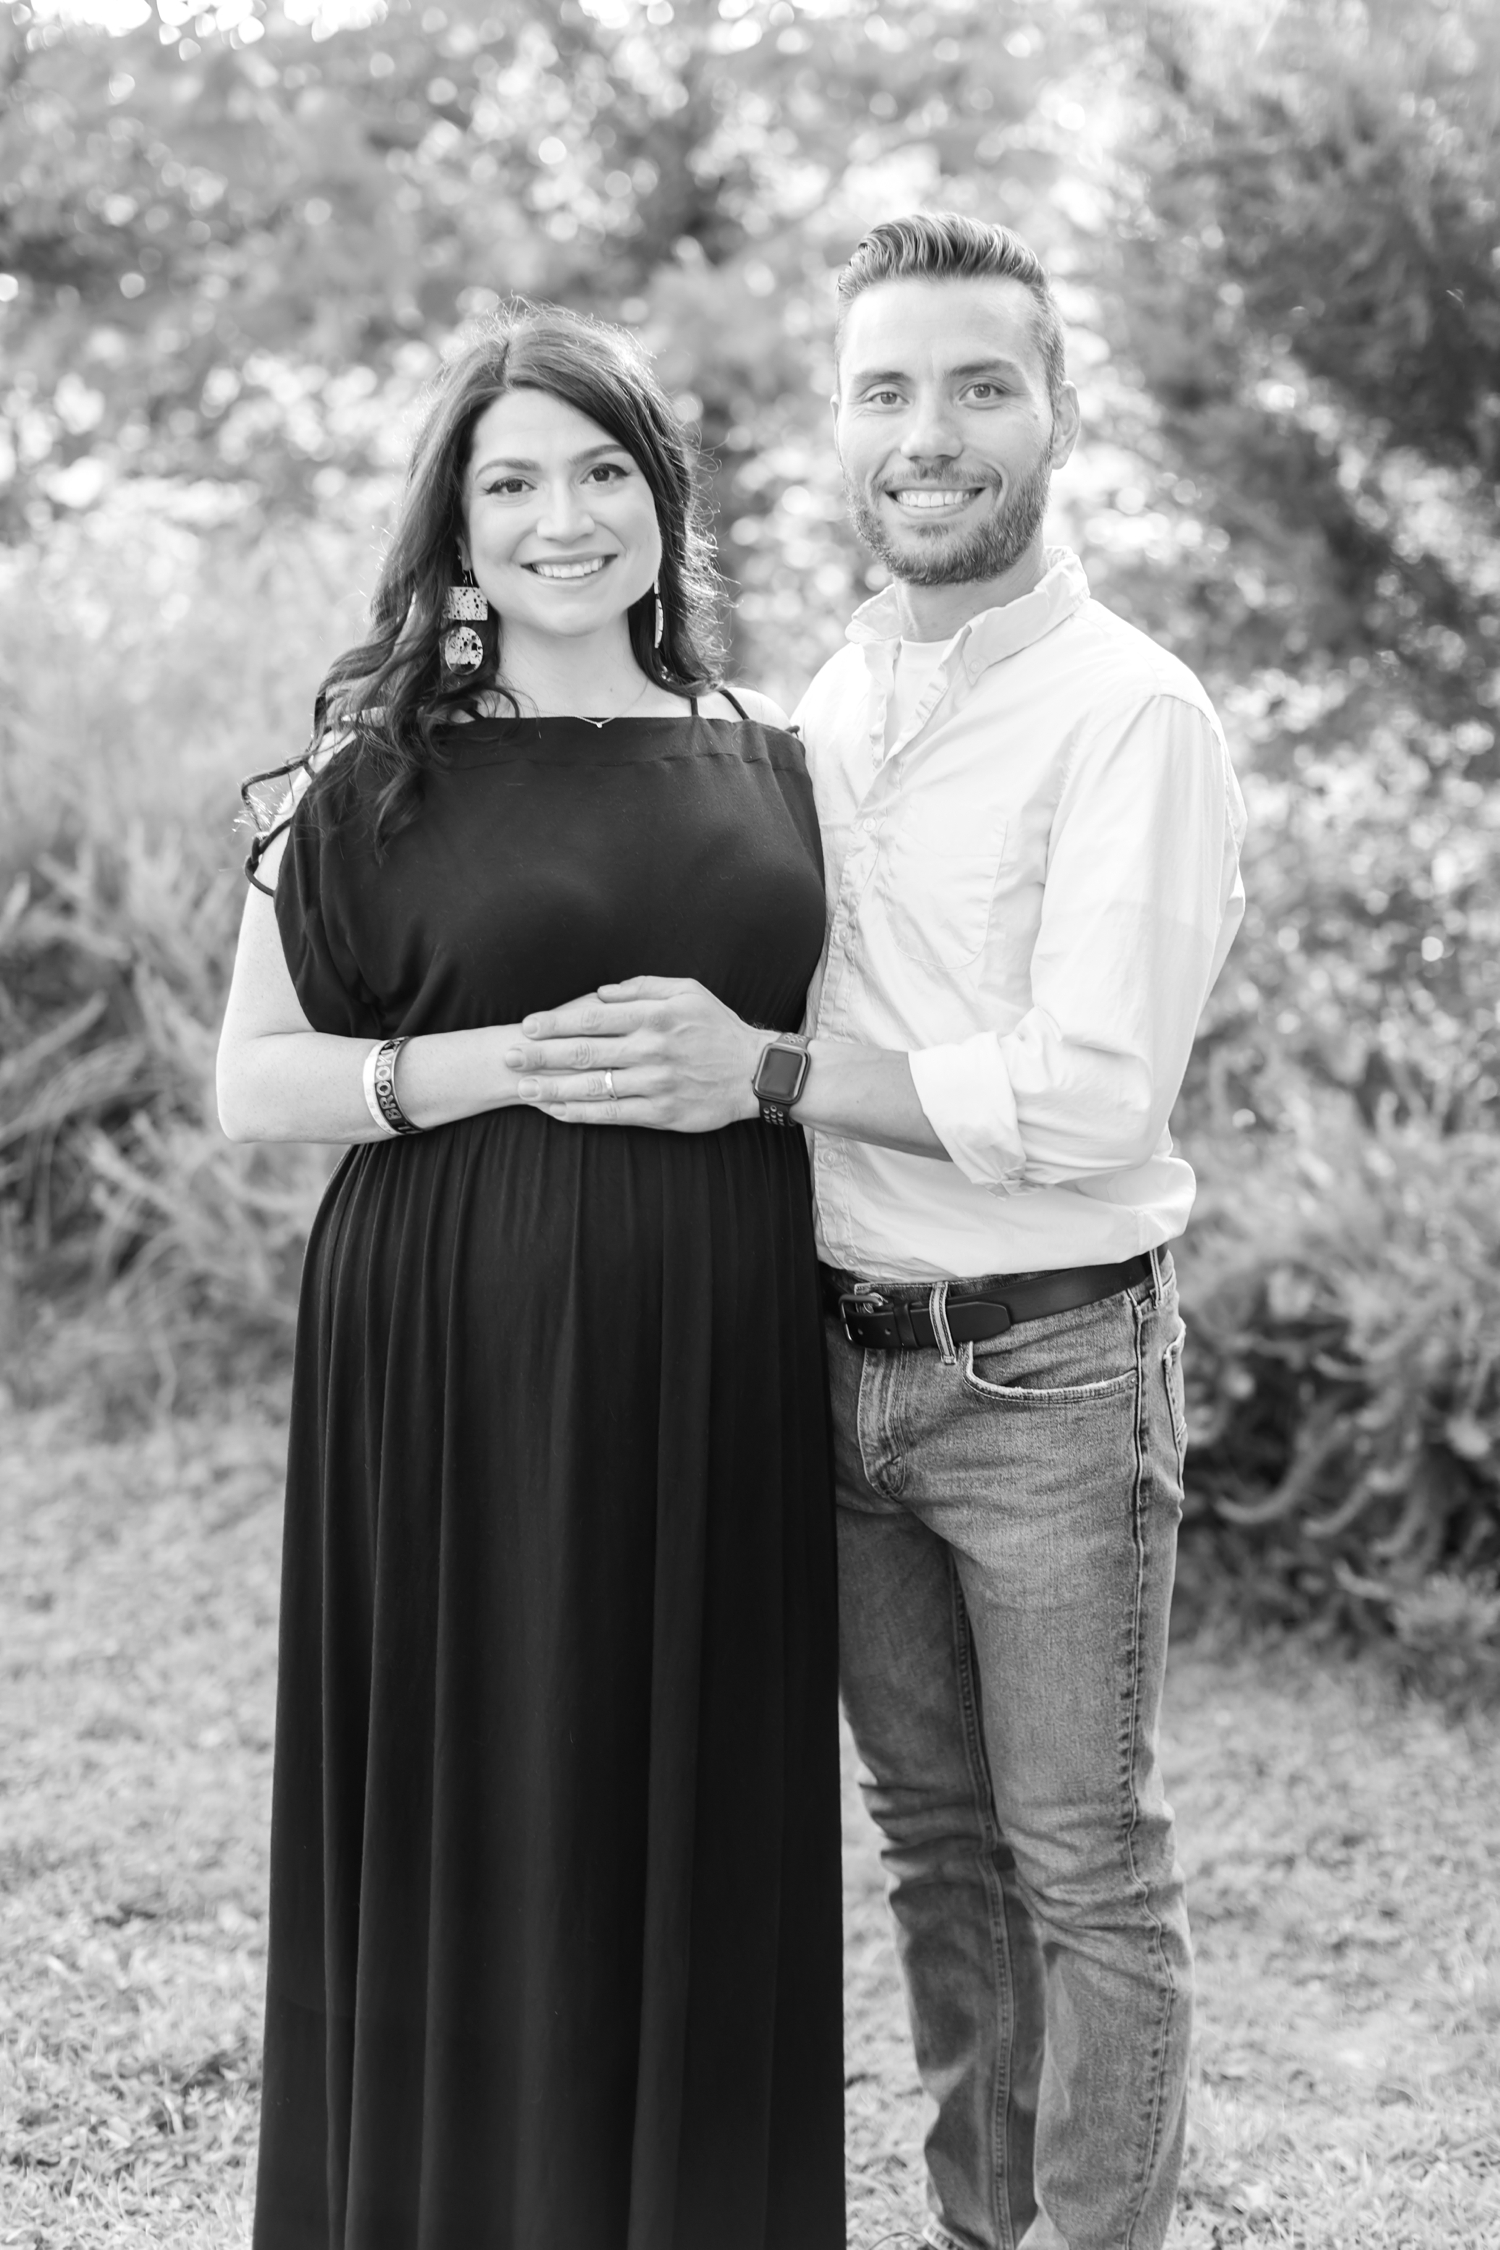 Saunders-Consroe Maternity-2_Cromwell-Valley-Park-Maryland-maternity-photographer-anna-grace-photography-photo.jpg